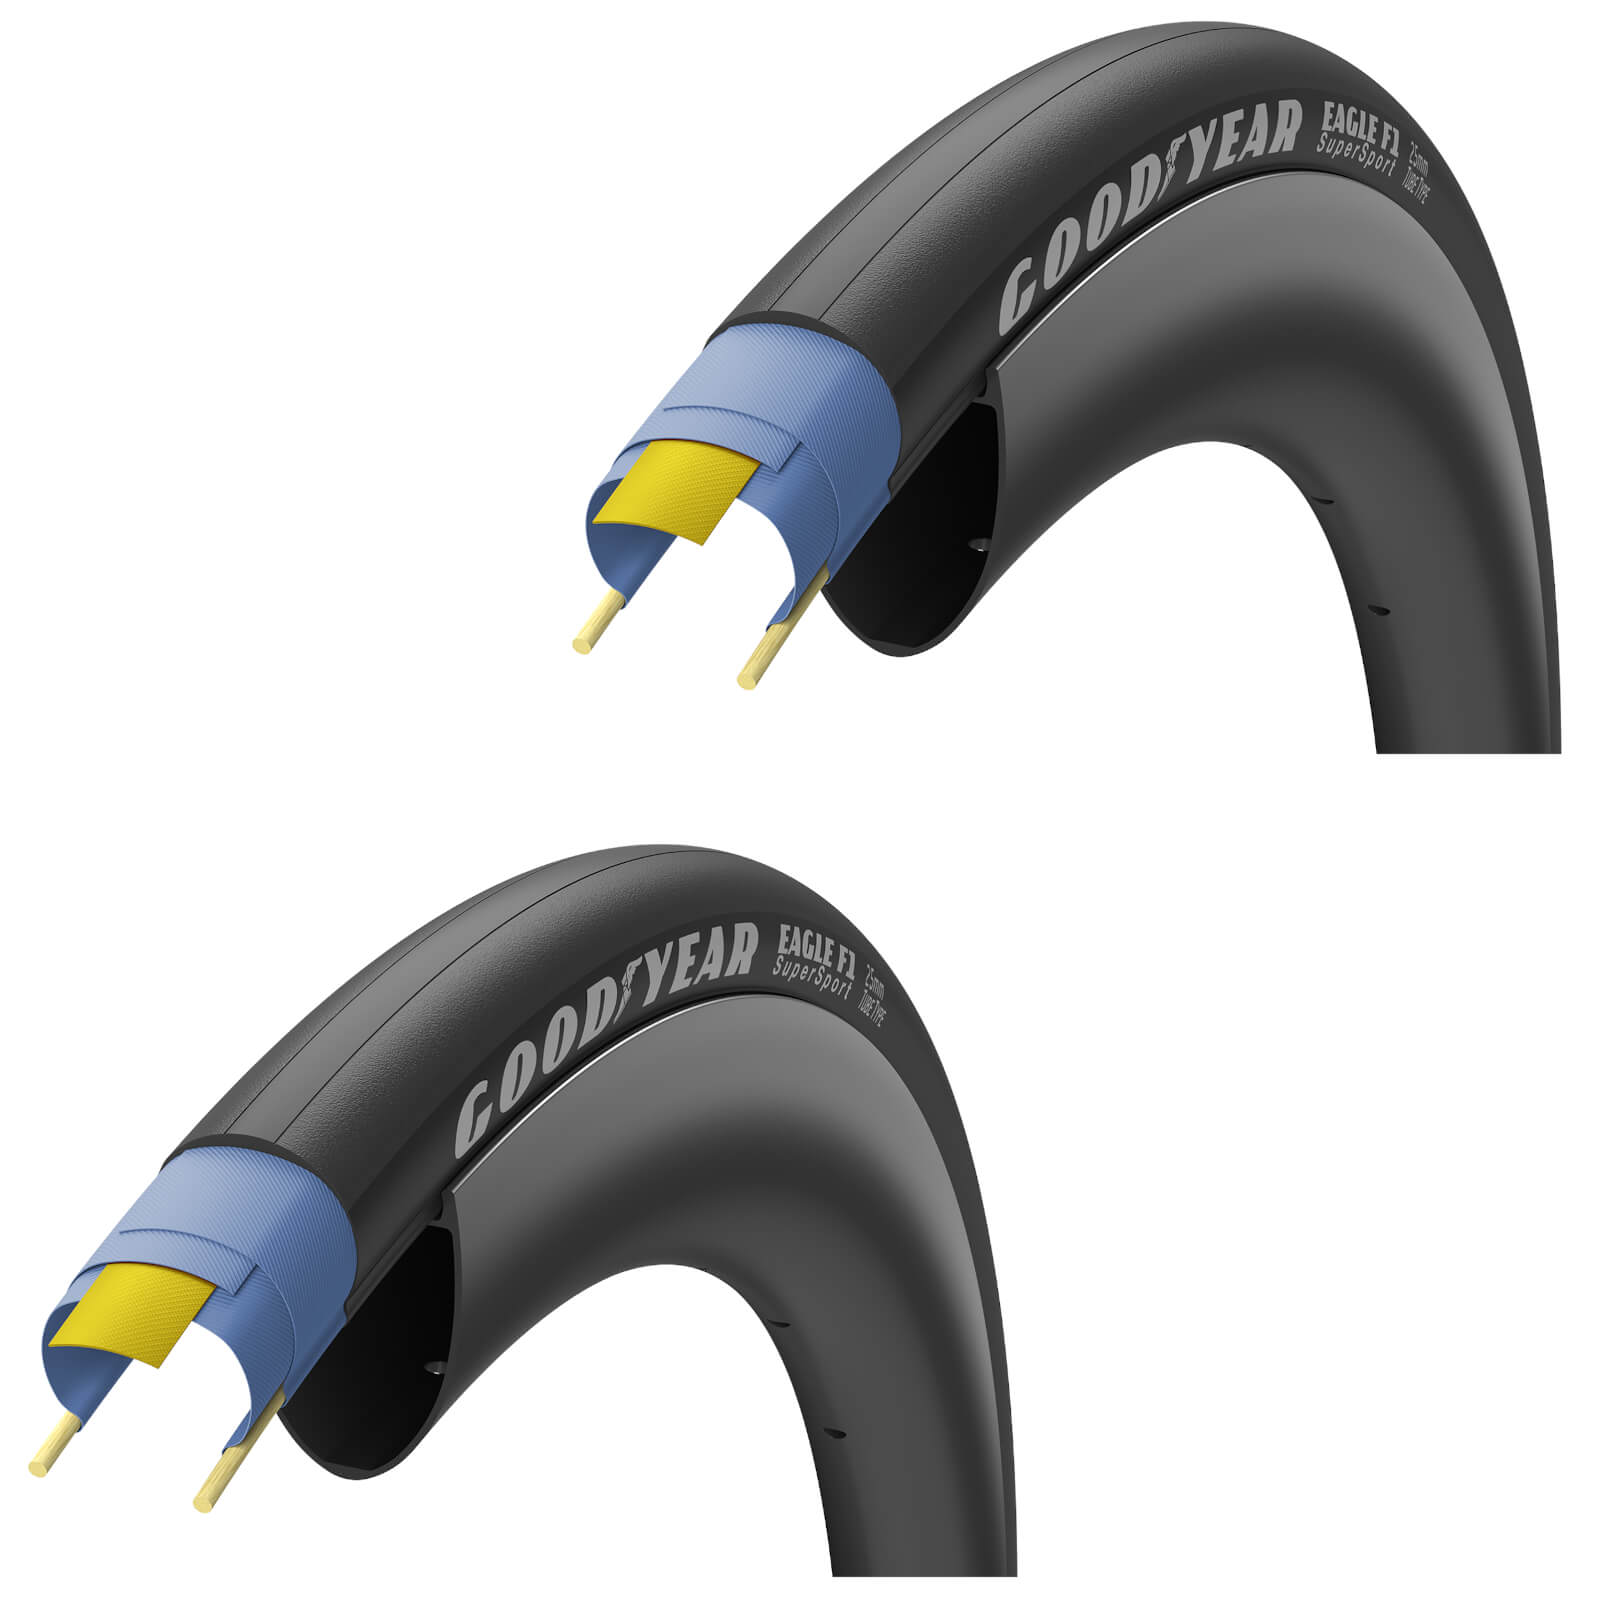 Image of Goodyear Eagle F1 SuperSport Road Tyre Twin Pack - 700C x 28mm - Black